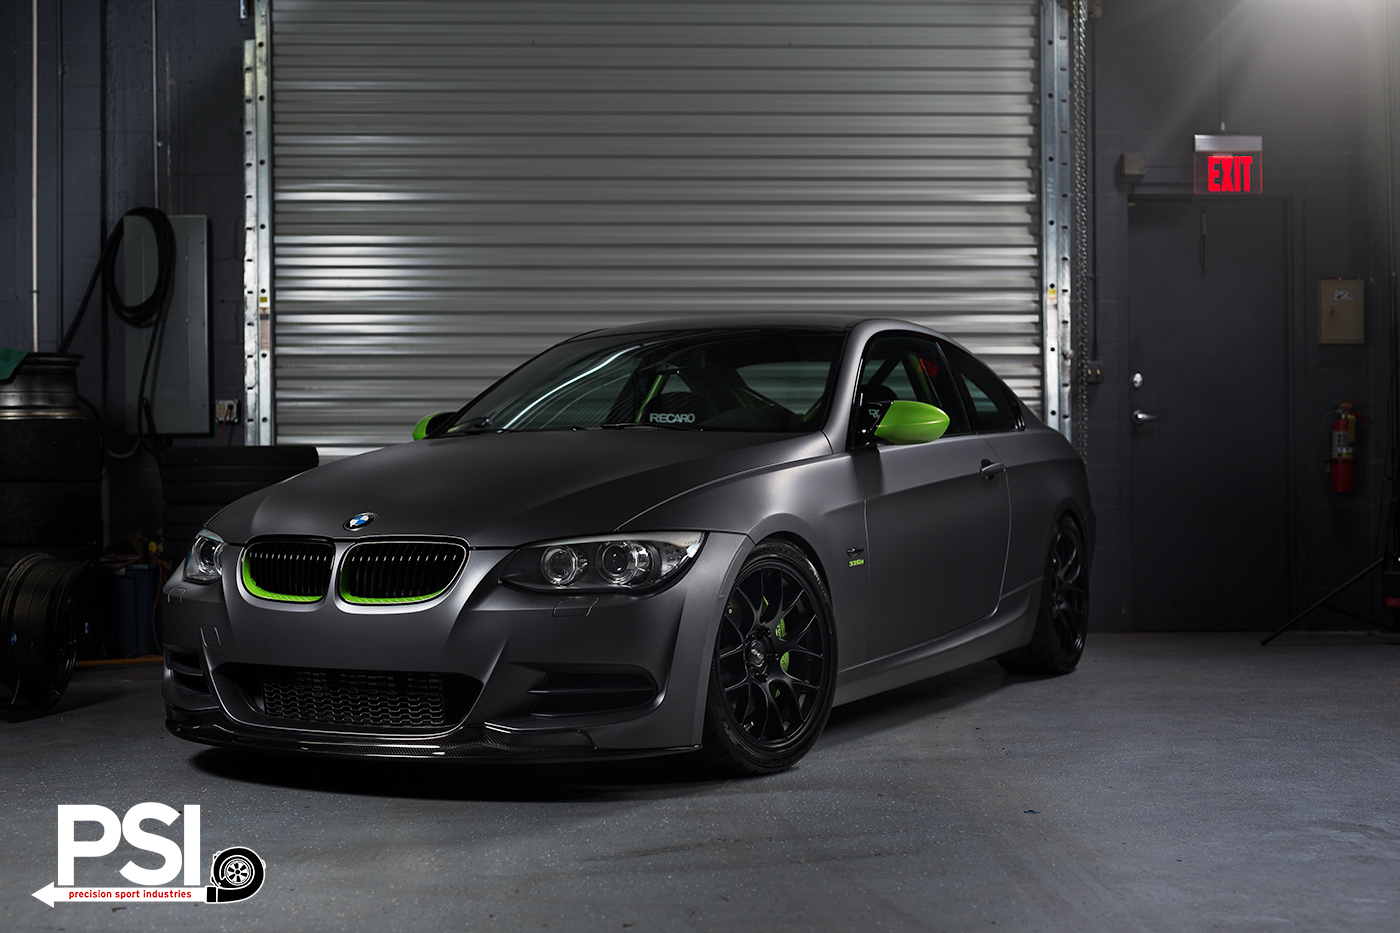 the ghost chameleon bmw 335i build by precision sport industries. Black Bedroom Furniture Sets. Home Design Ideas